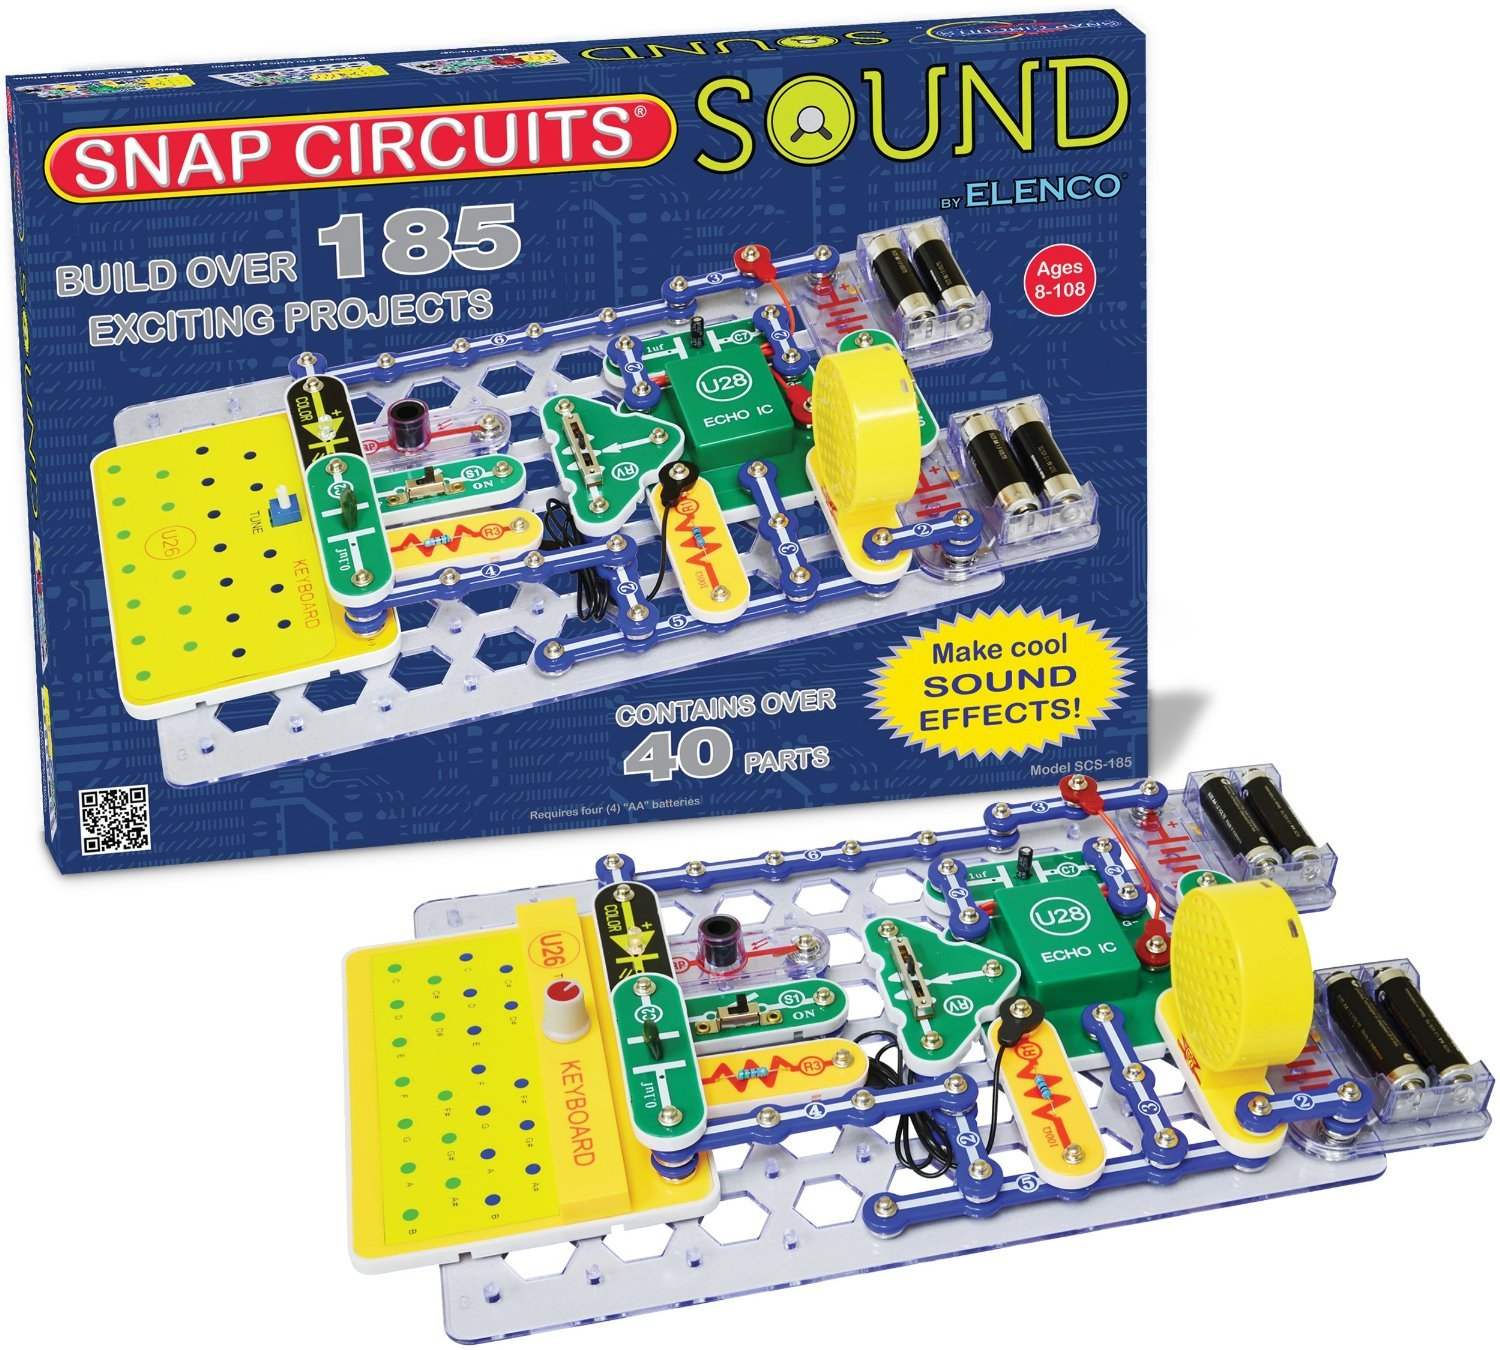 Snap Circuits Sound Electronics Discovery Kit B01N1H8CR6